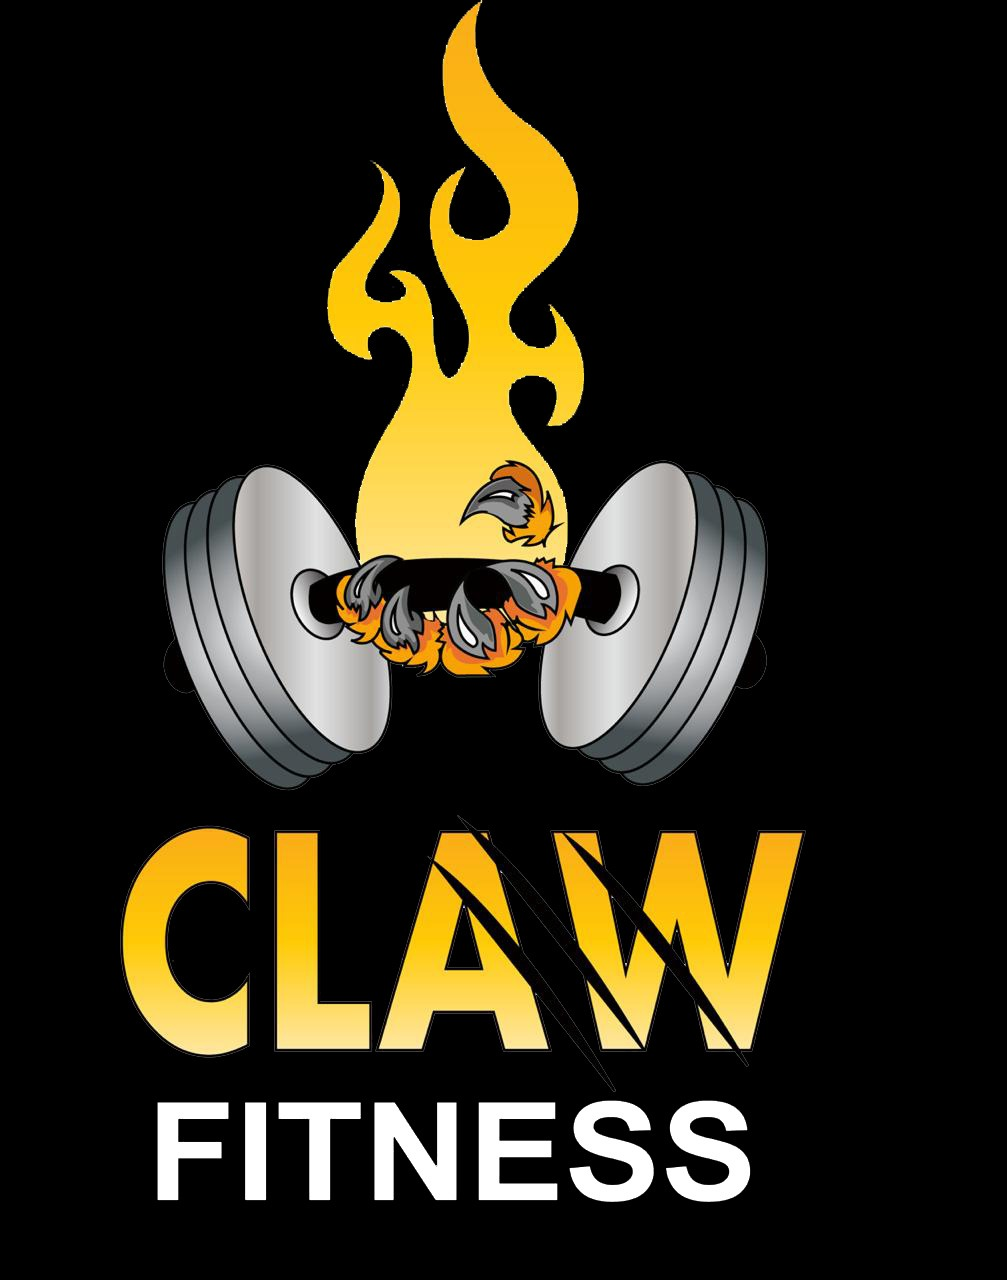 Claw Fitness